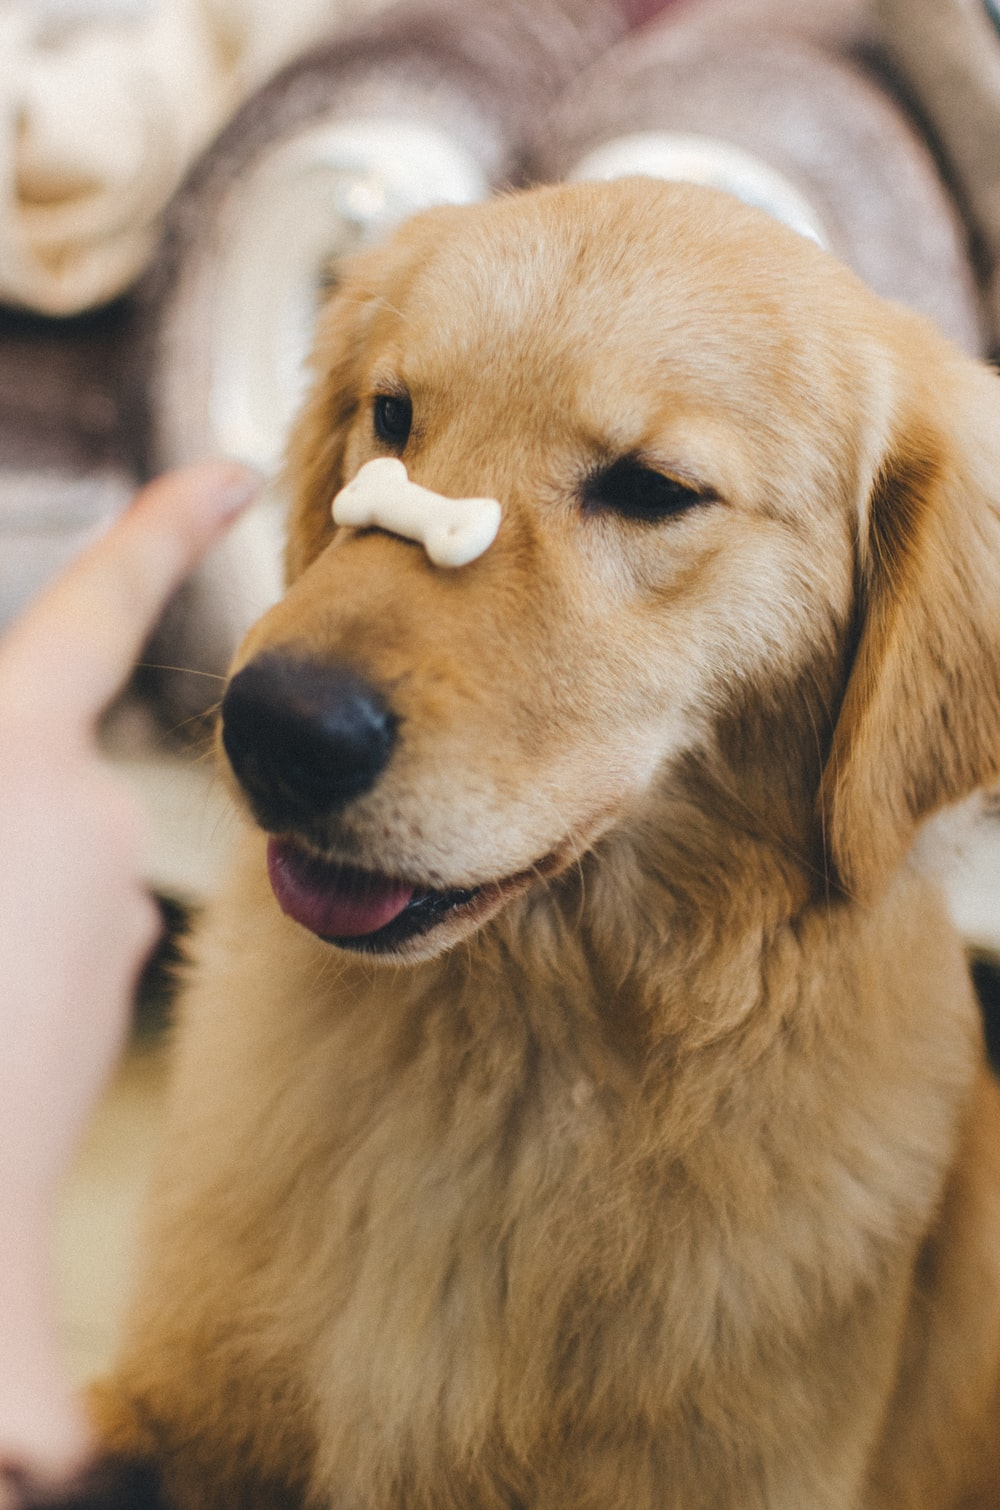 adult golden retriever with cookie bone on nose